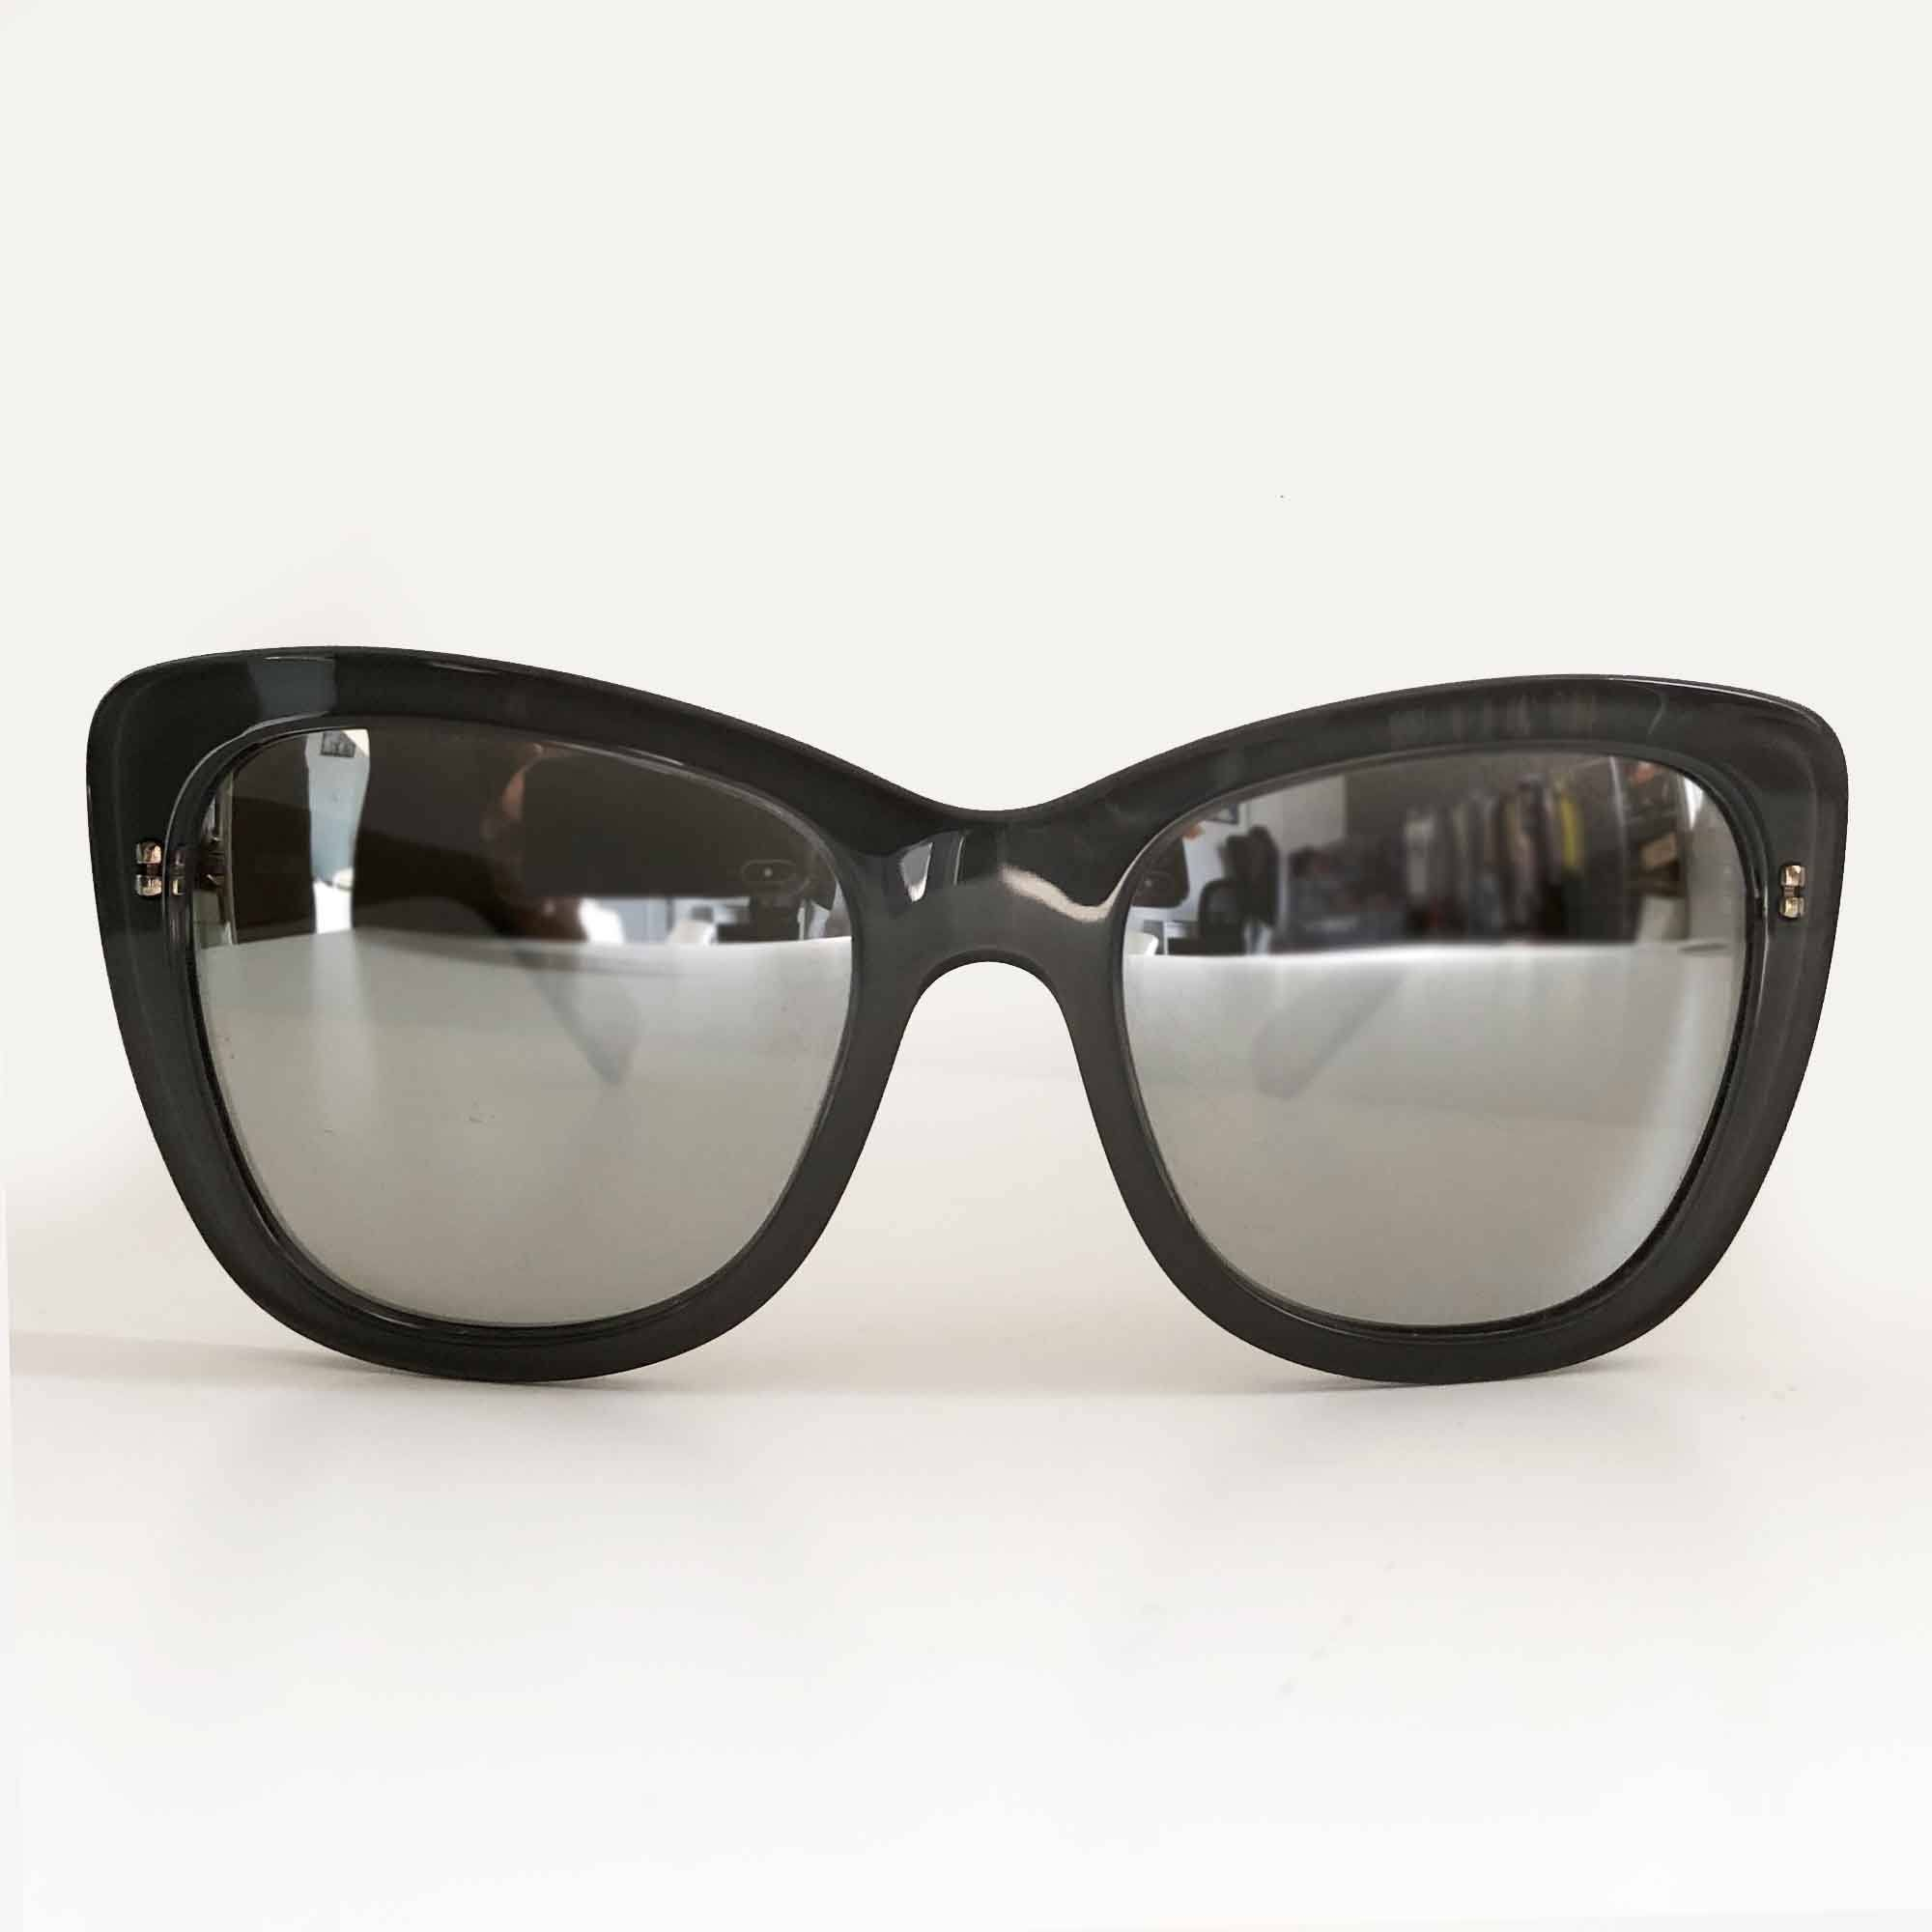 Dolce & Gabbana Grey Metallic Lens Sunglasses